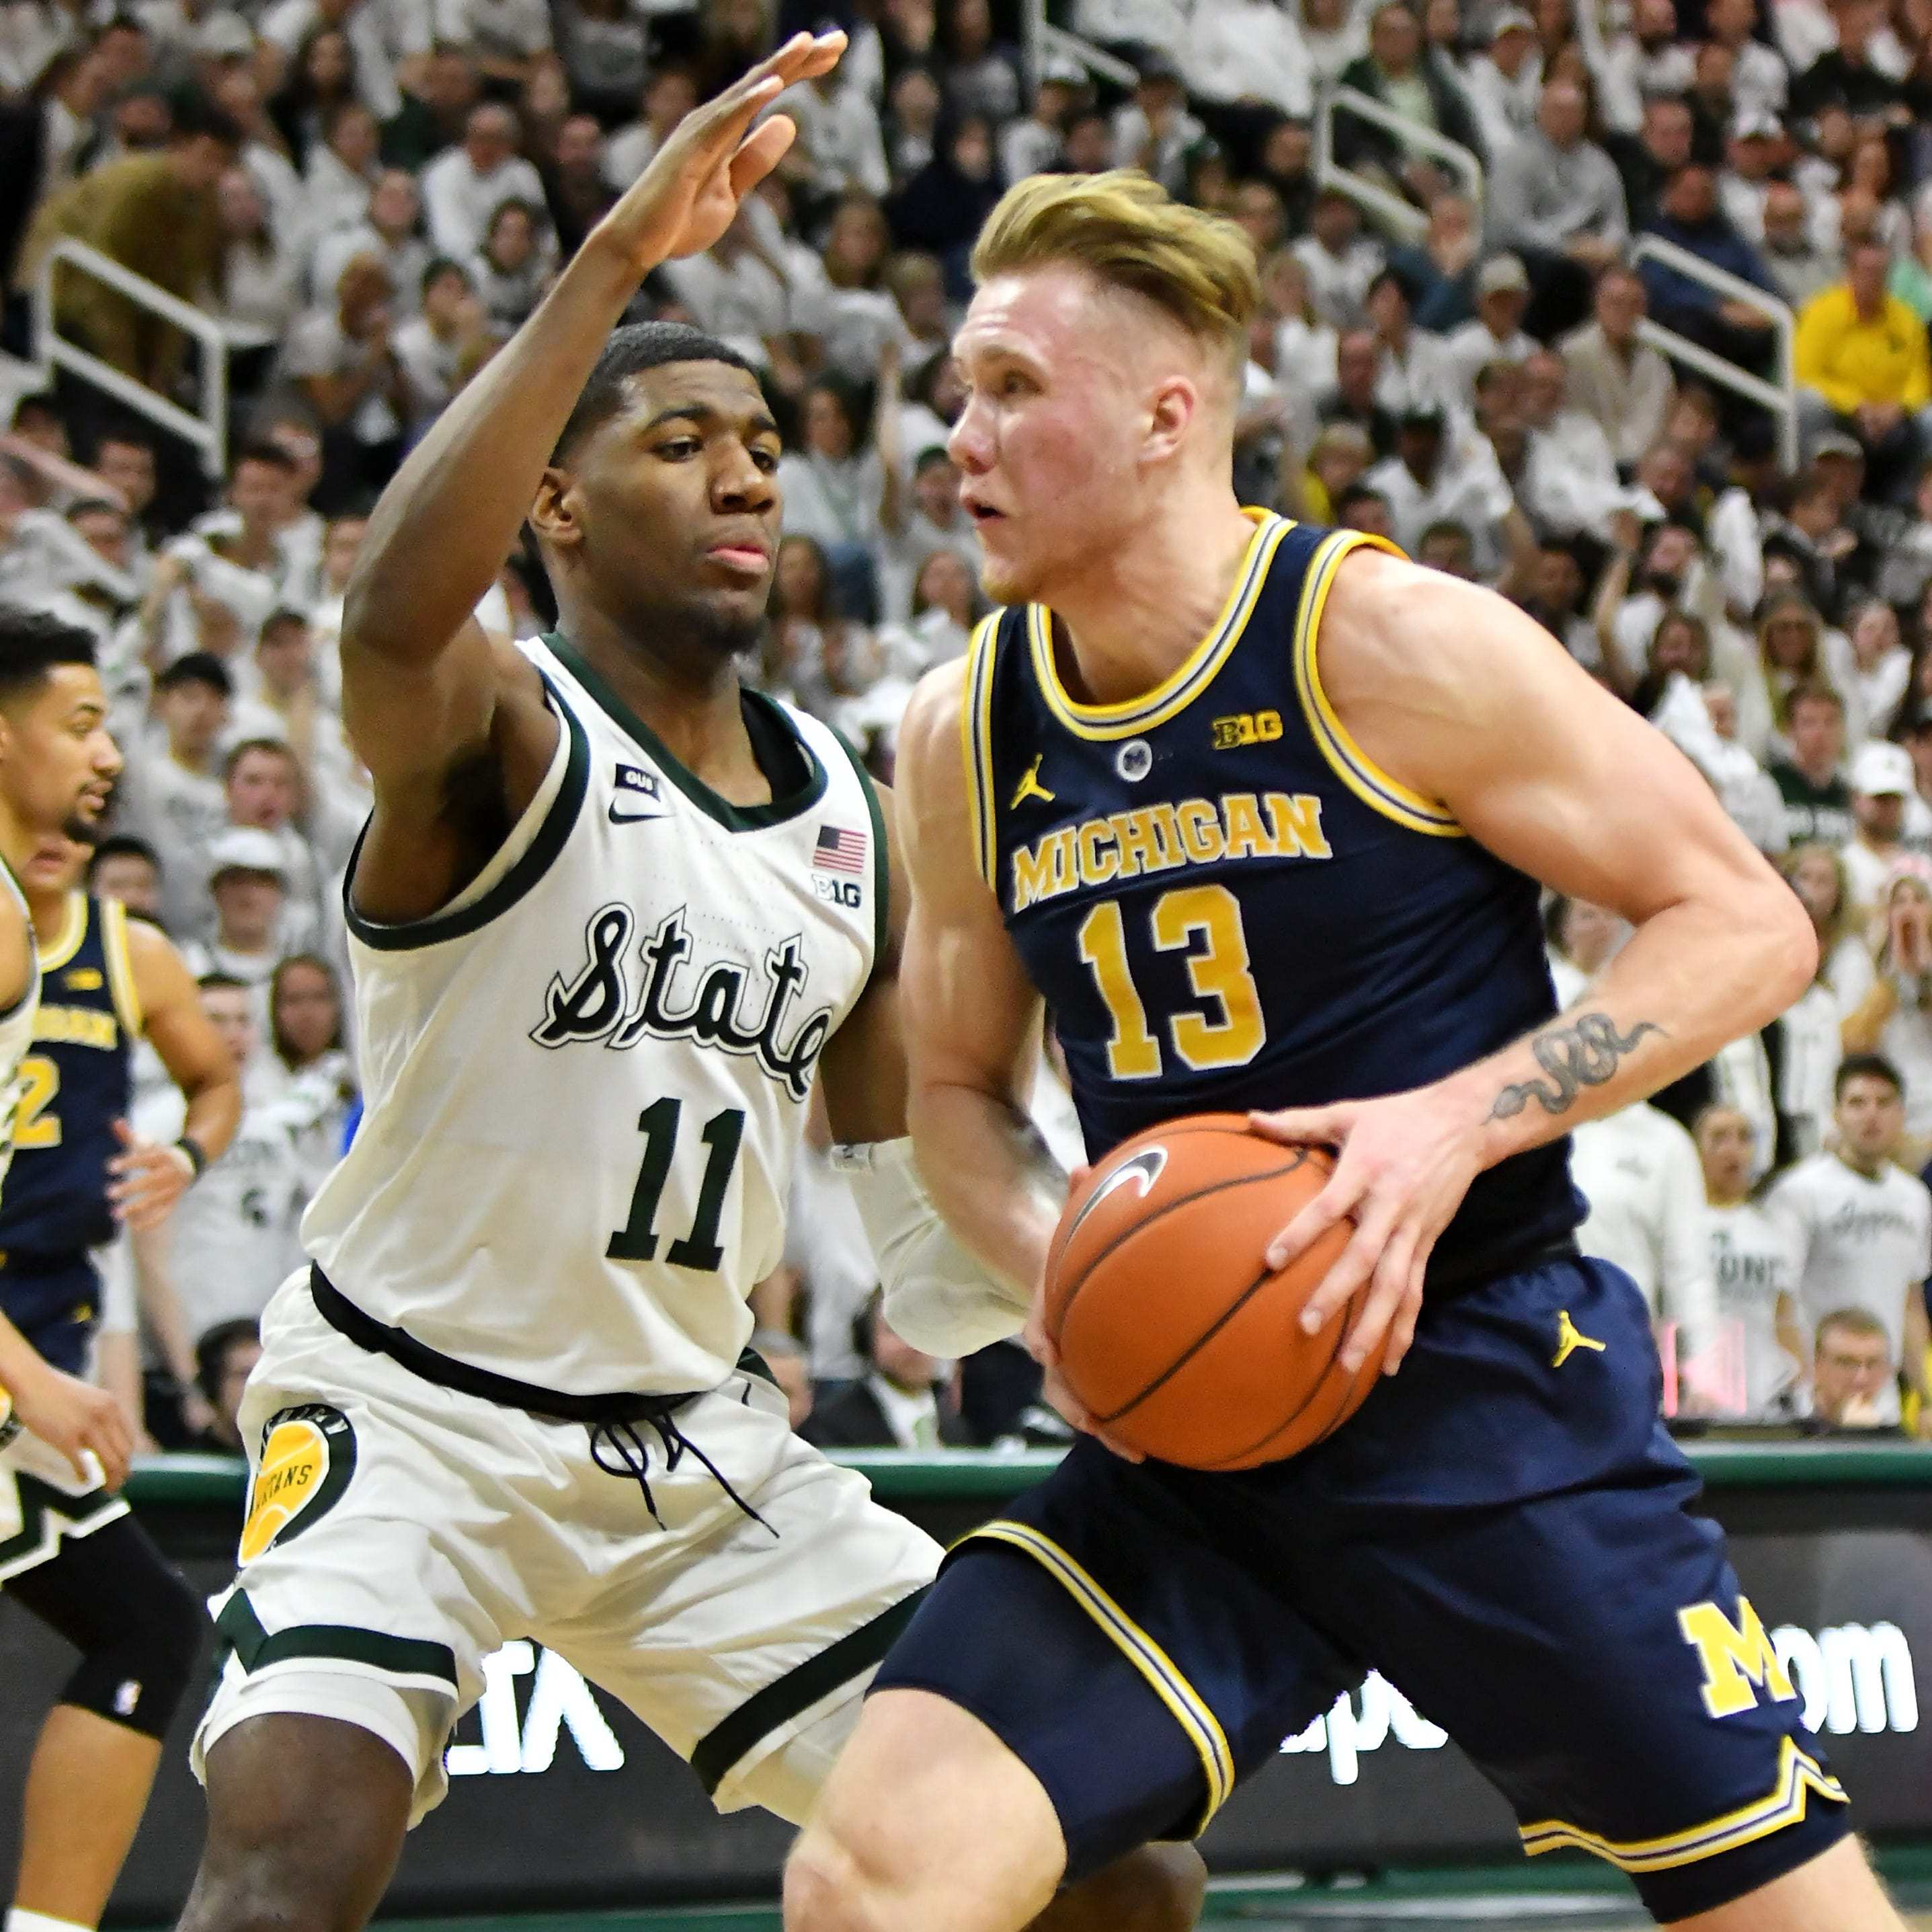 Michigan State a No. 2 seed, Michigan a No. 3 seed in latest bracket projections